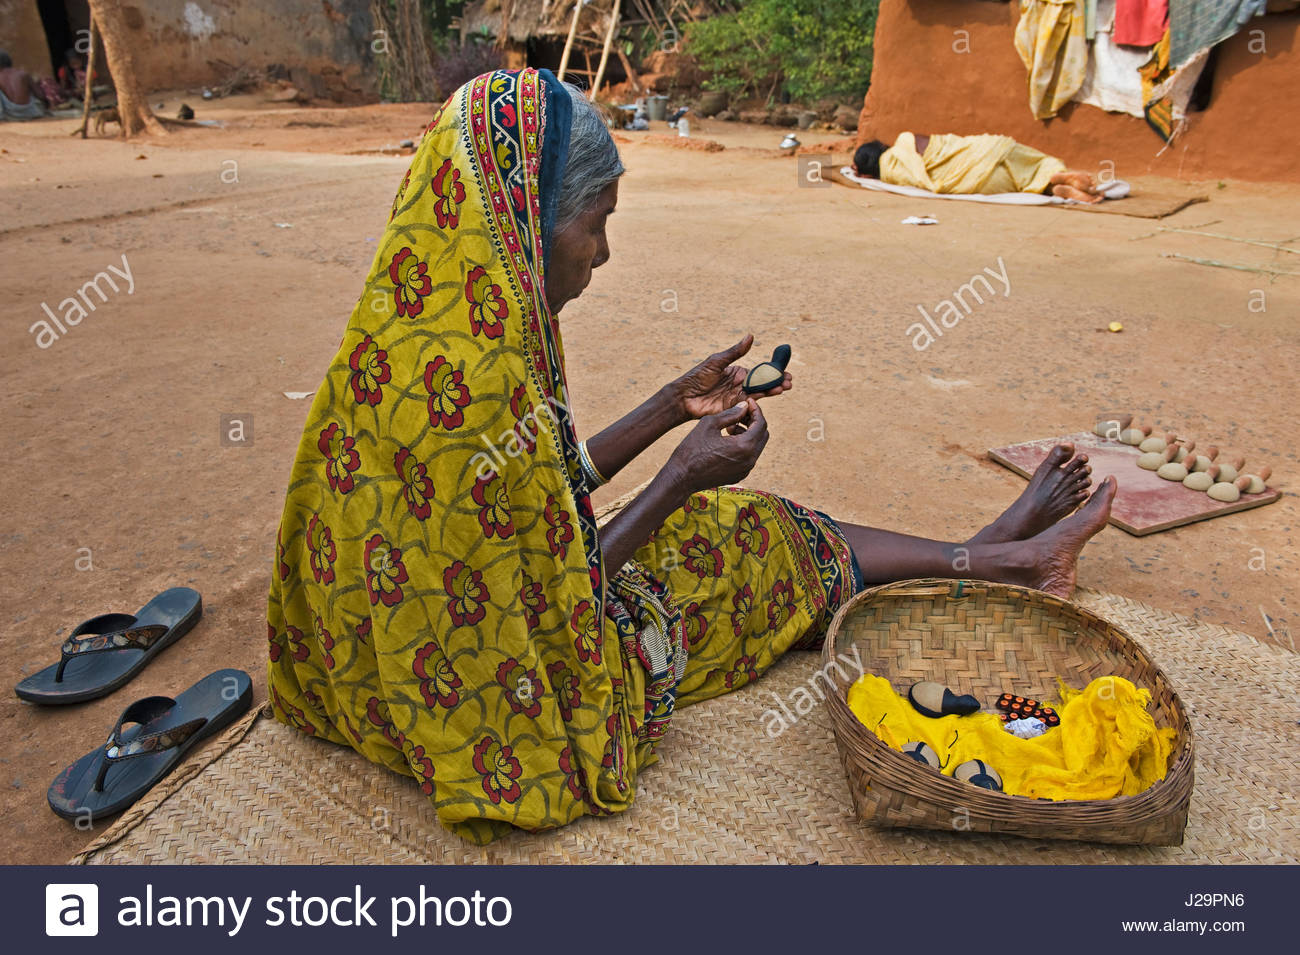 India, Orissa, Sadaibarini, untouchable village specialized in the foundry of objects, manufacture of clay moulds. - Stock Image